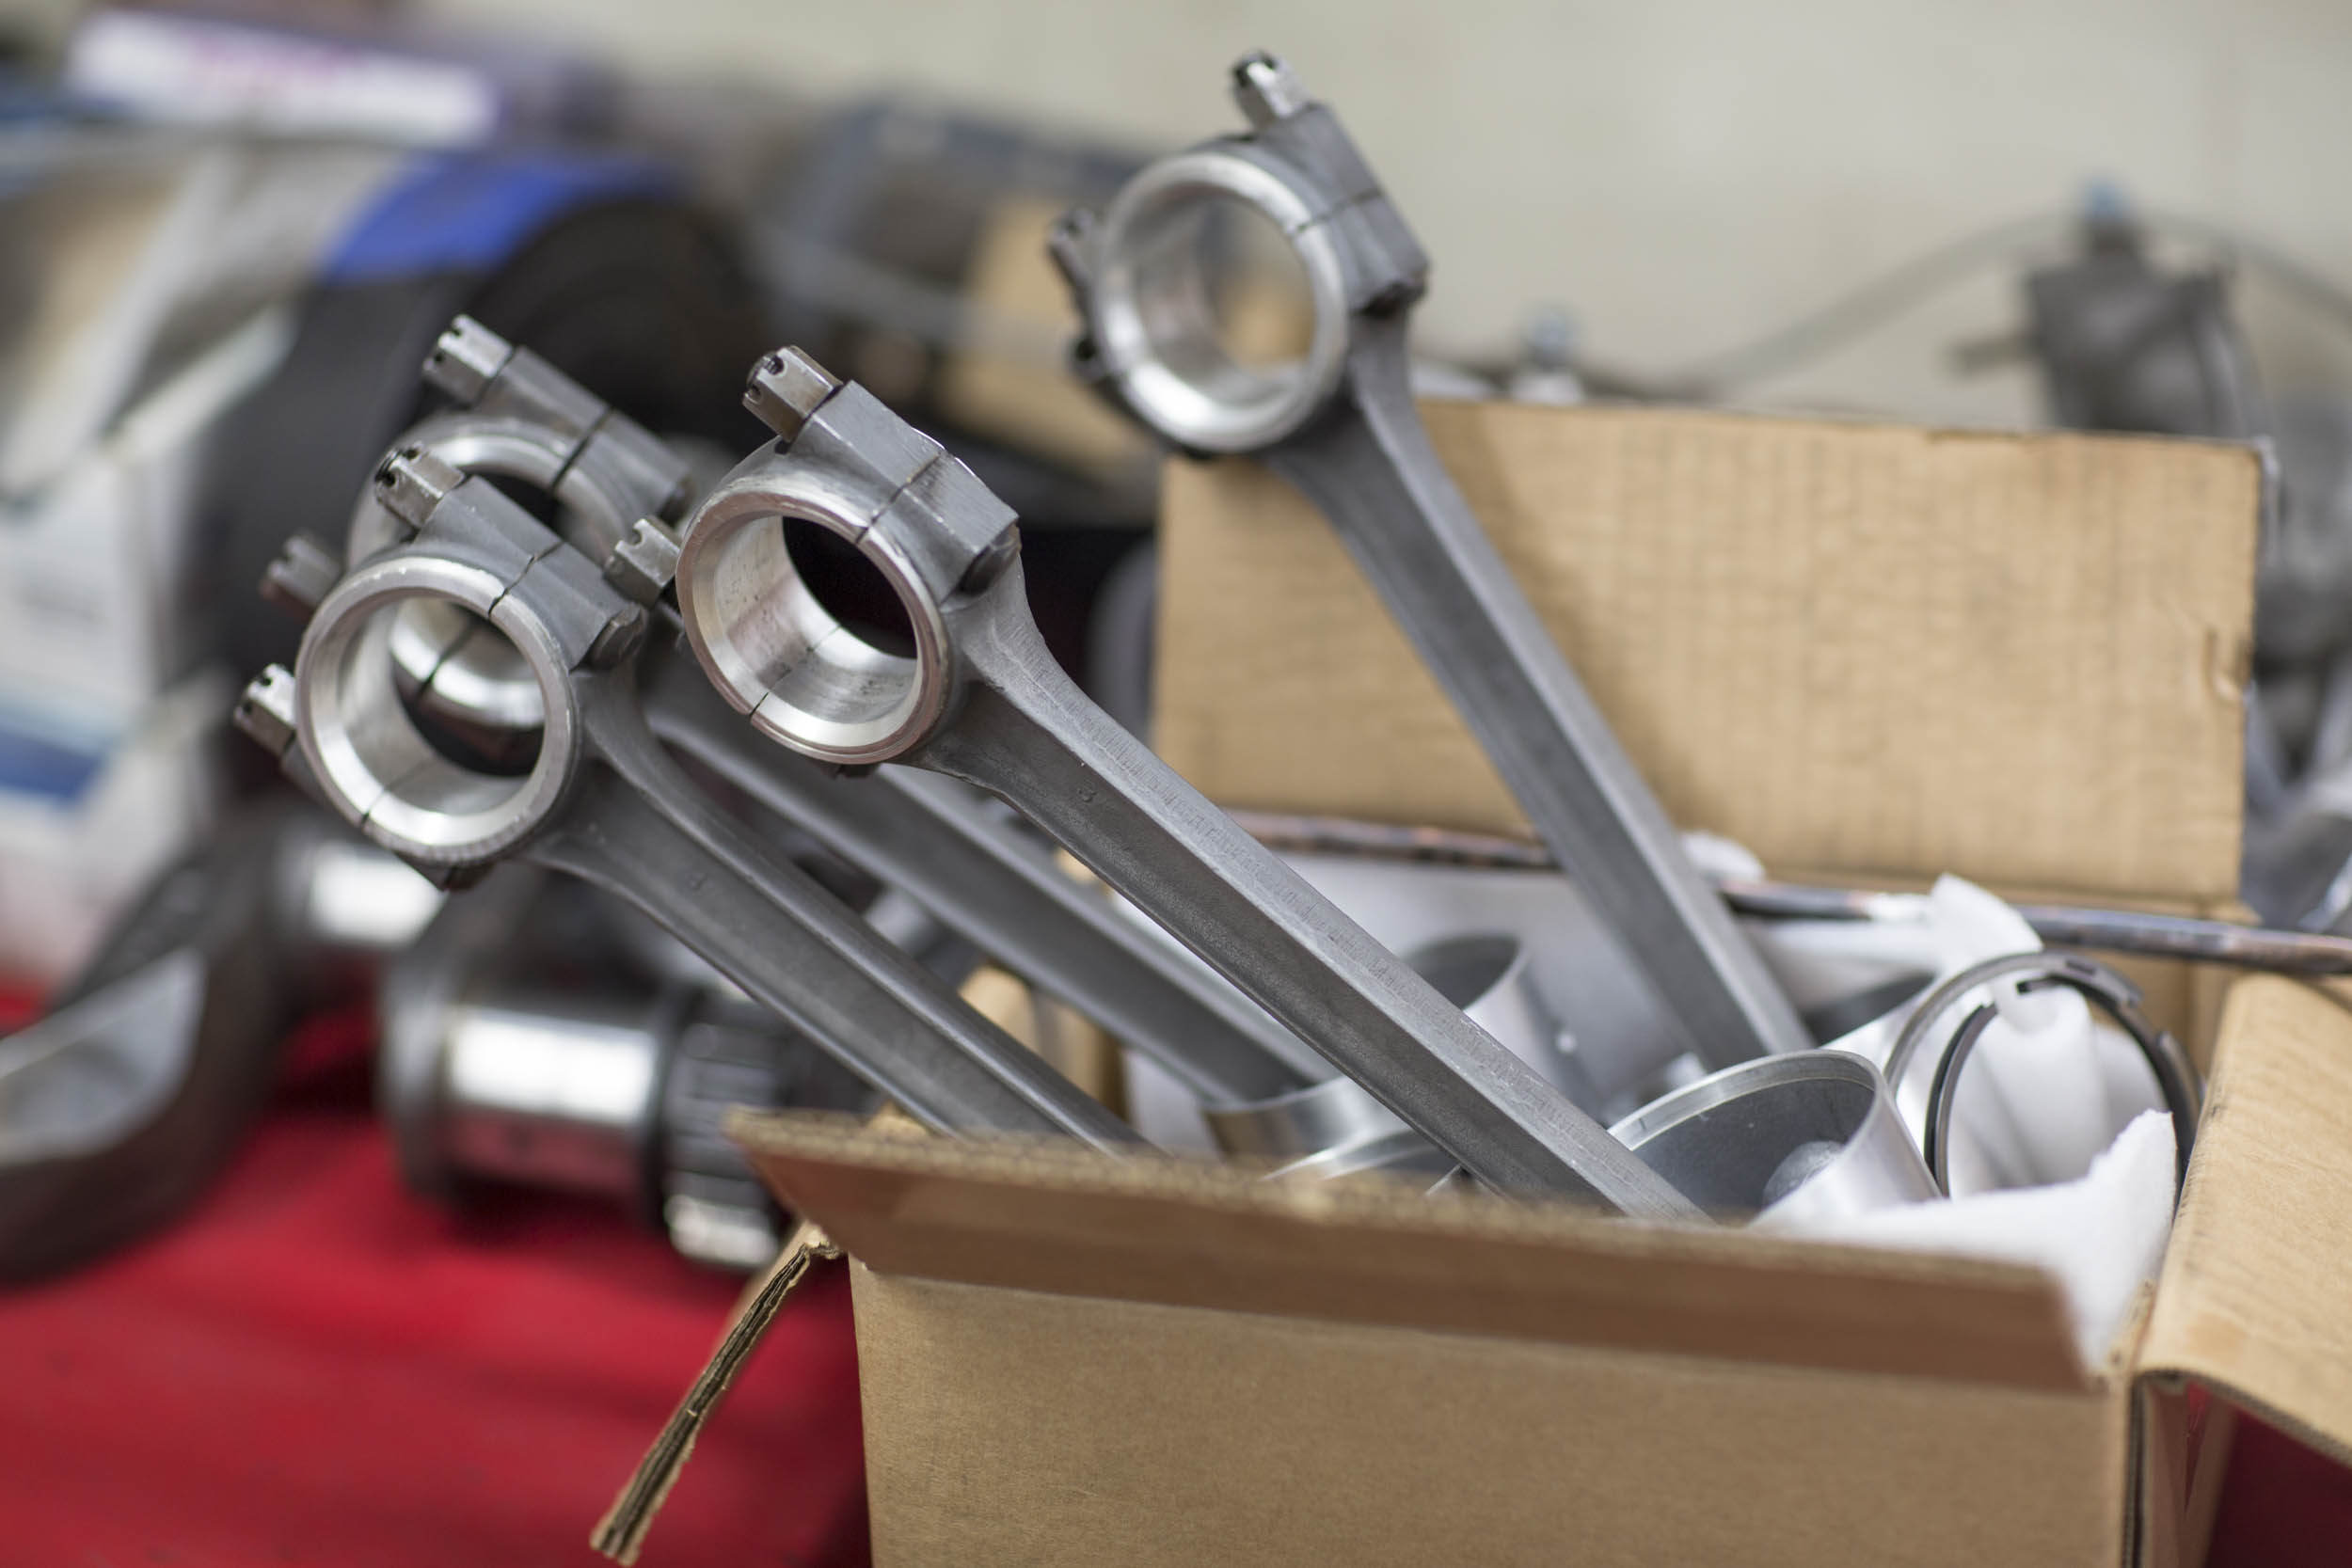 a set of Ferrari pistons and rods await their new home.